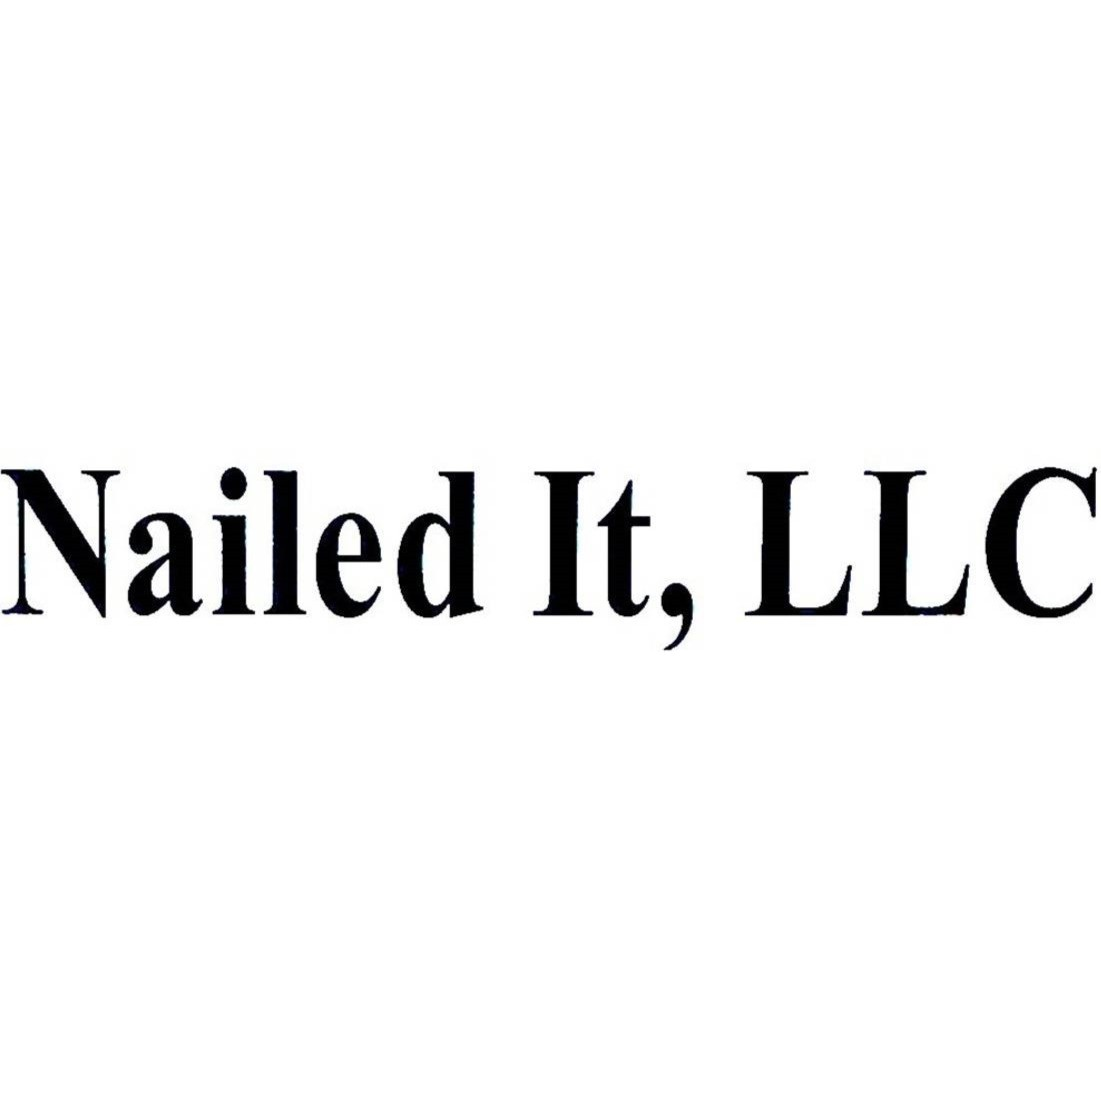 Nailed it llc coupons near me in linthicum heights 8coupons for Architectural services near me